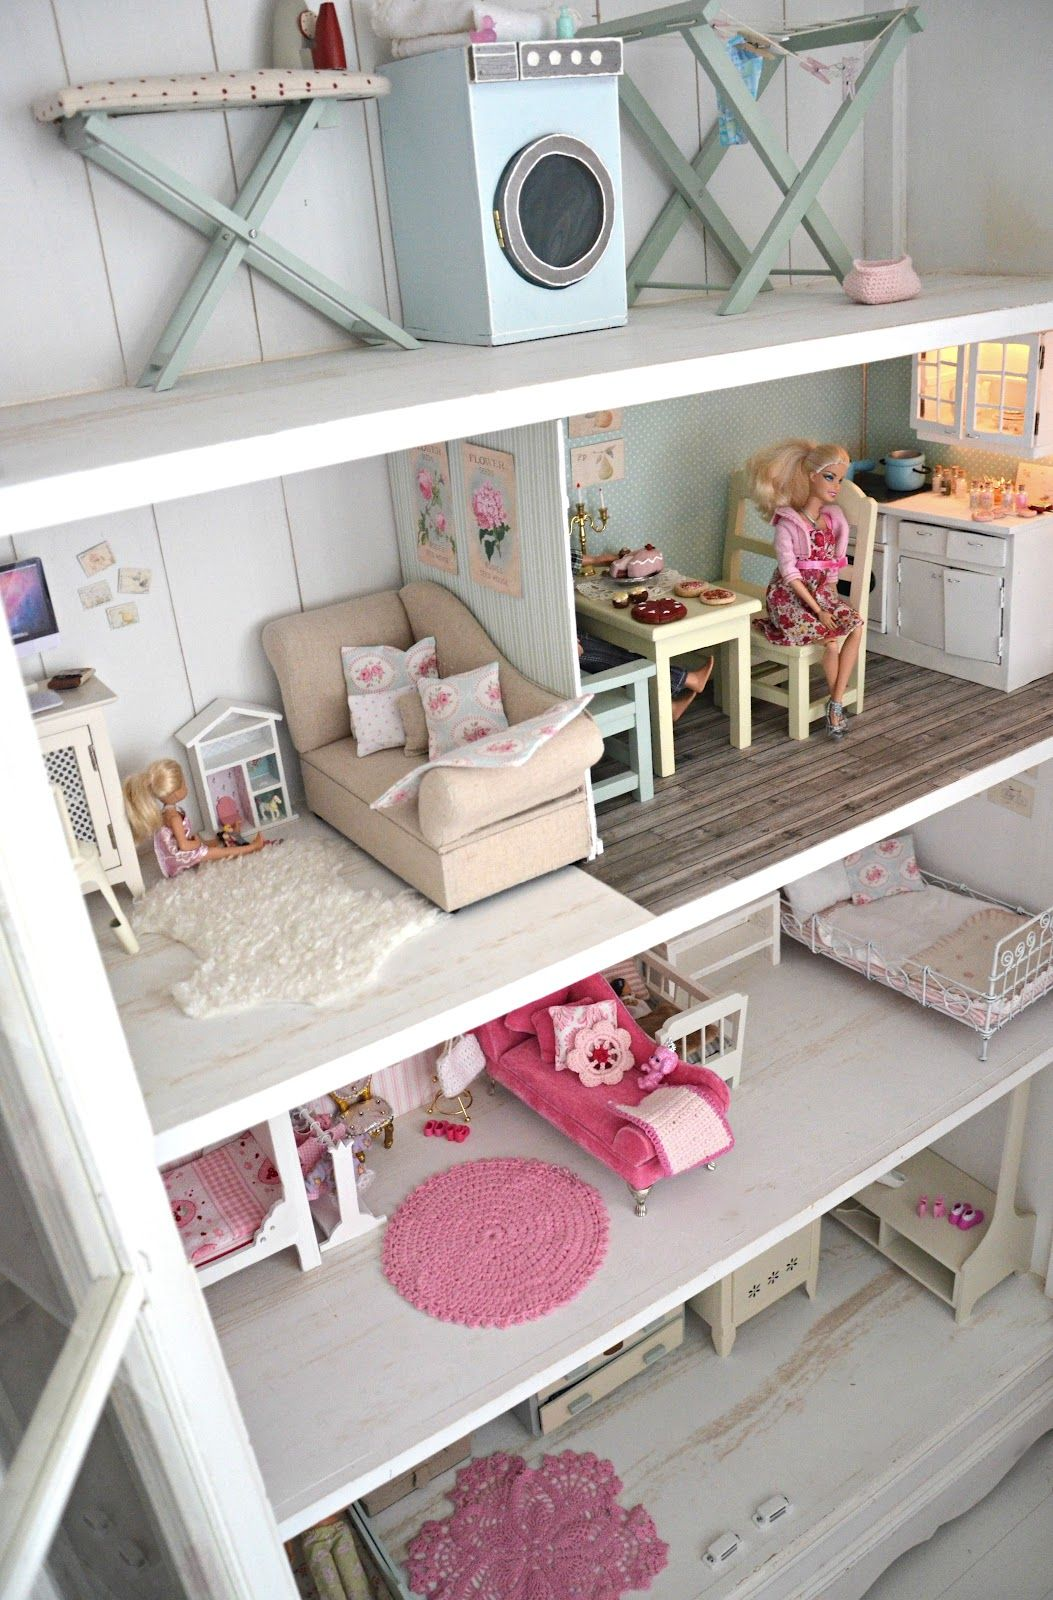 homemade barbie furniture ideas. Always Wanted A Doll House When I Was Little Girl! Wonderful Idea To Make Out Of Book Shelves! It Give You So Many Options For Set Up. Homemade Barbie Furniture Ideas